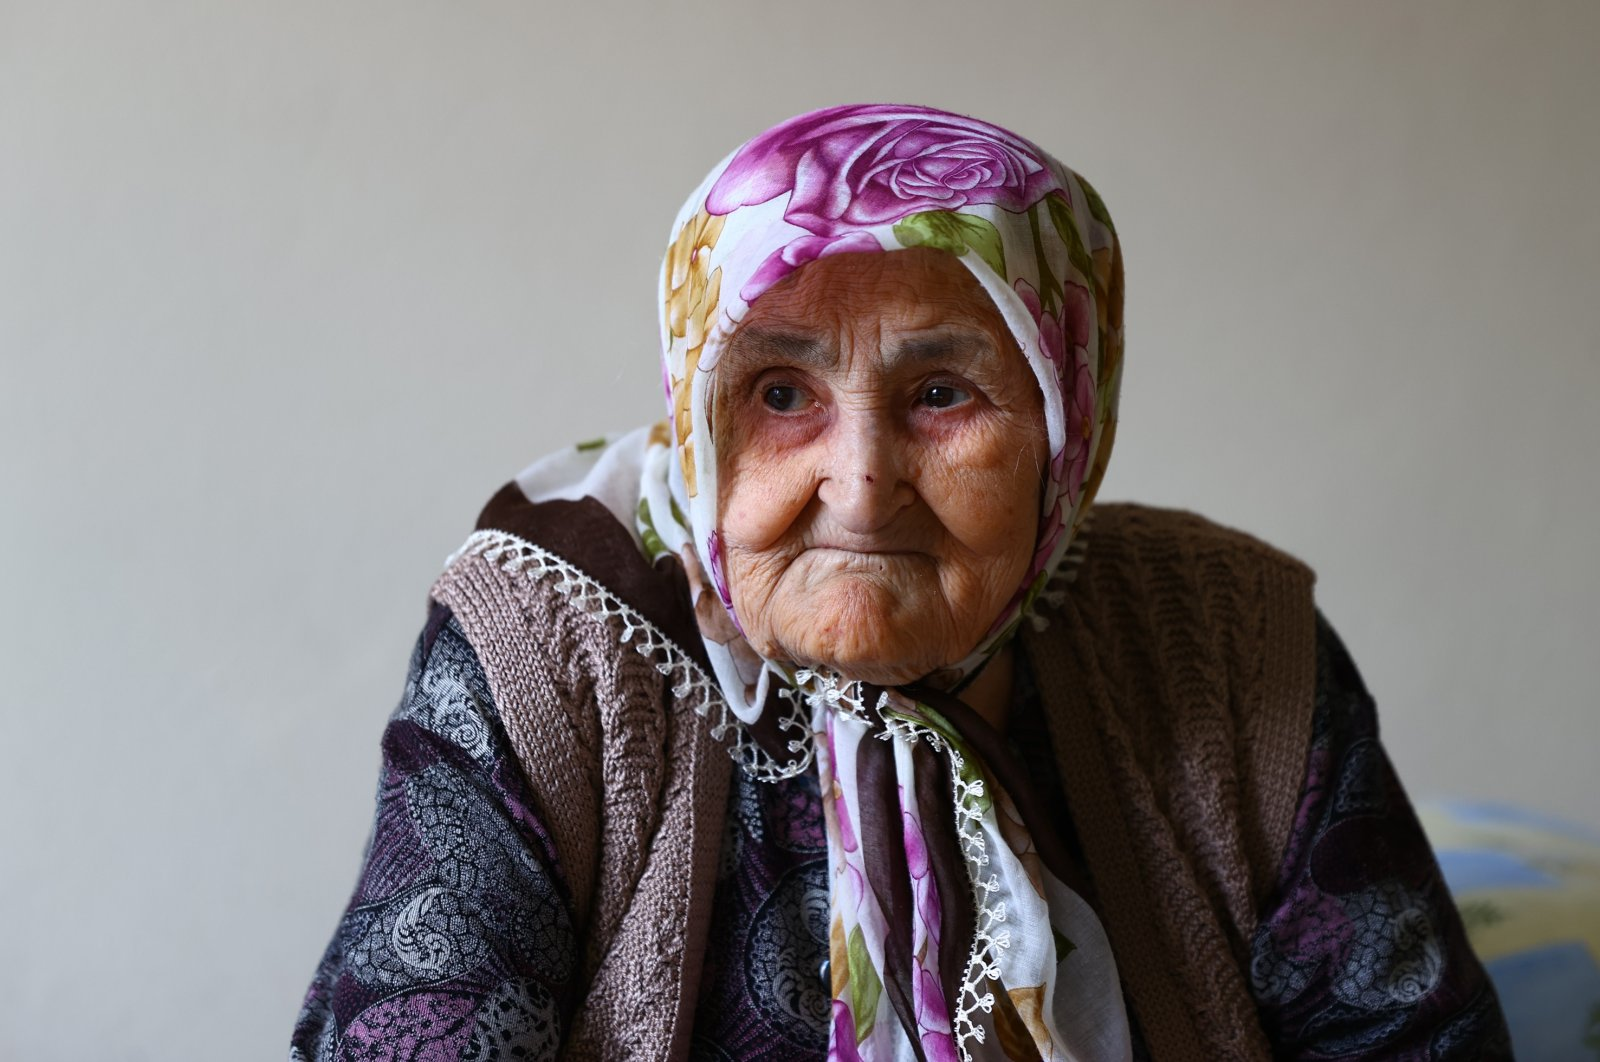 106-year-old Safiye Pehlivan listens during an interview at her home in Edirne, Turkey, March 23, 2021. (AA Photo)